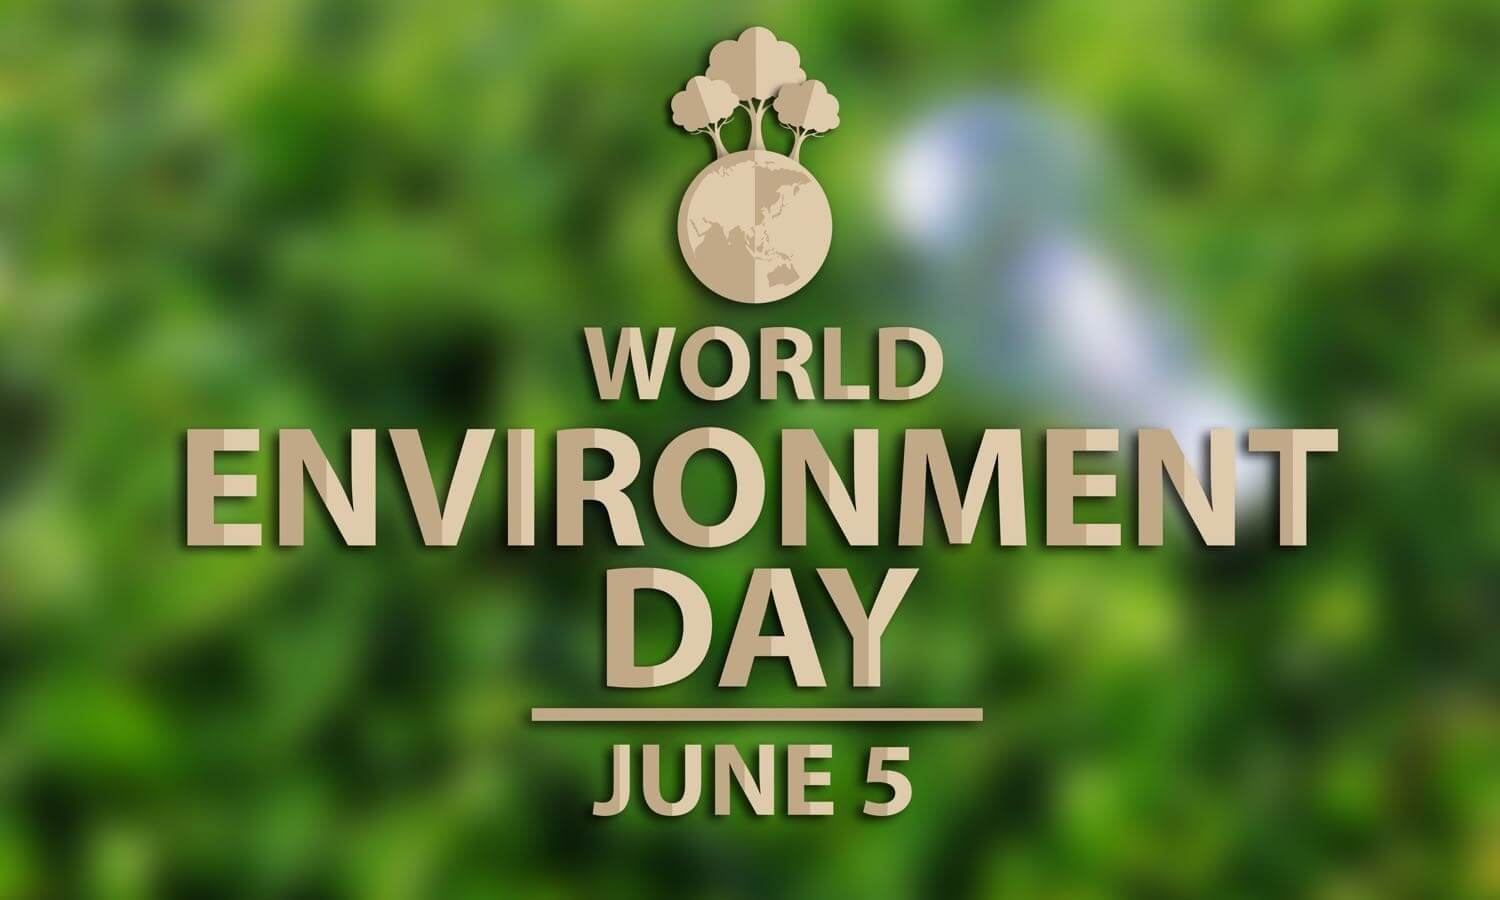 world environment day june 5 green hd wallpaper